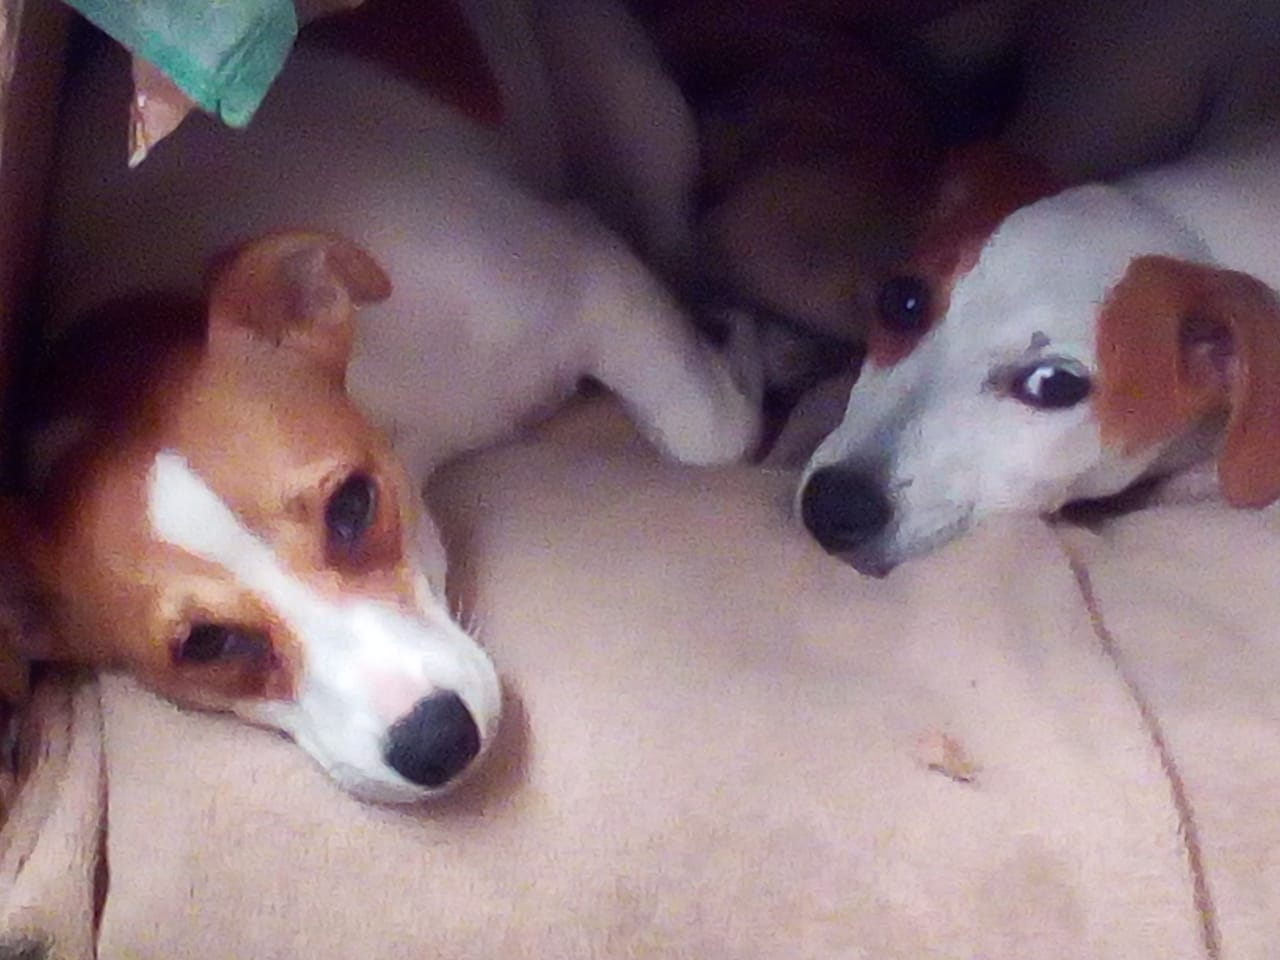 Tan and white Jack russell puppies